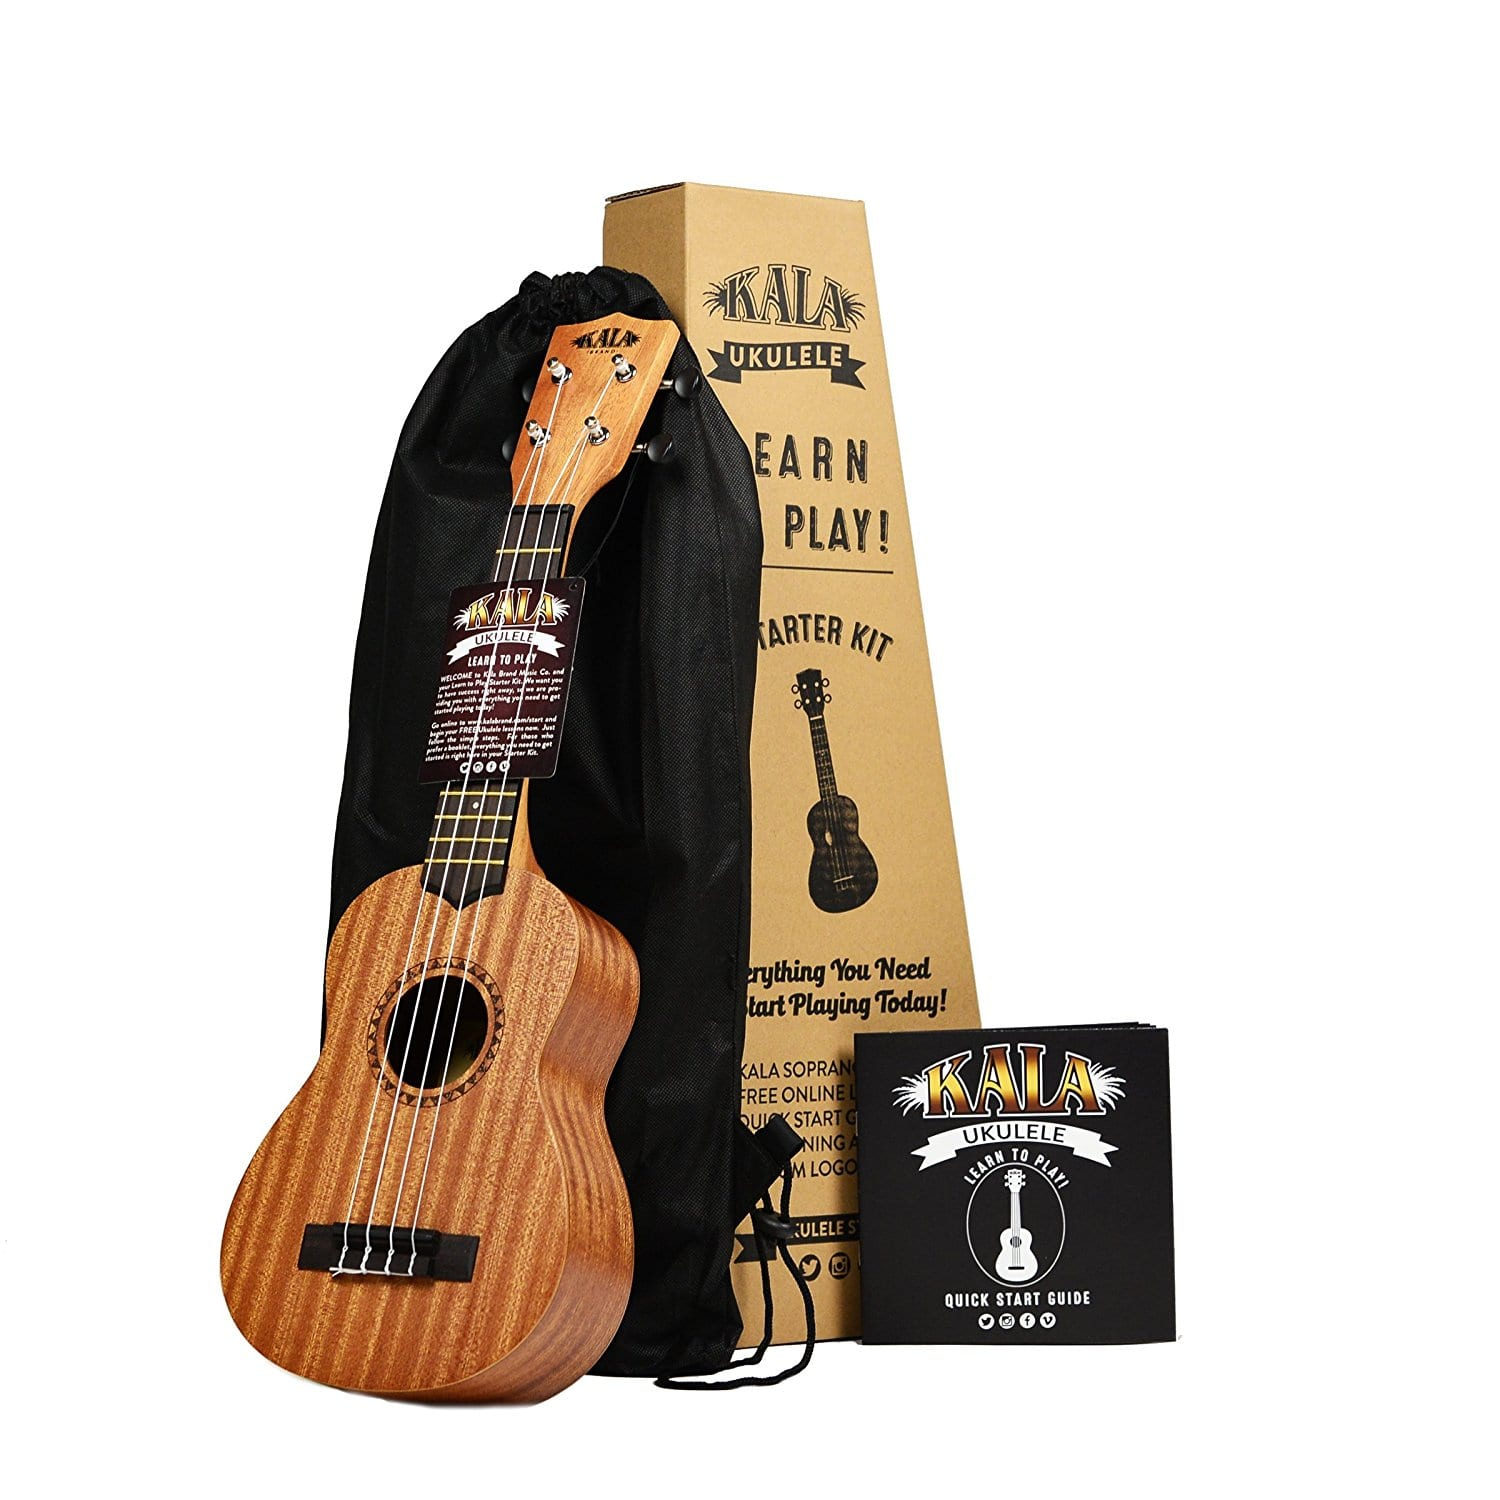 Kala Learn to Play ukulele kit at $49.99